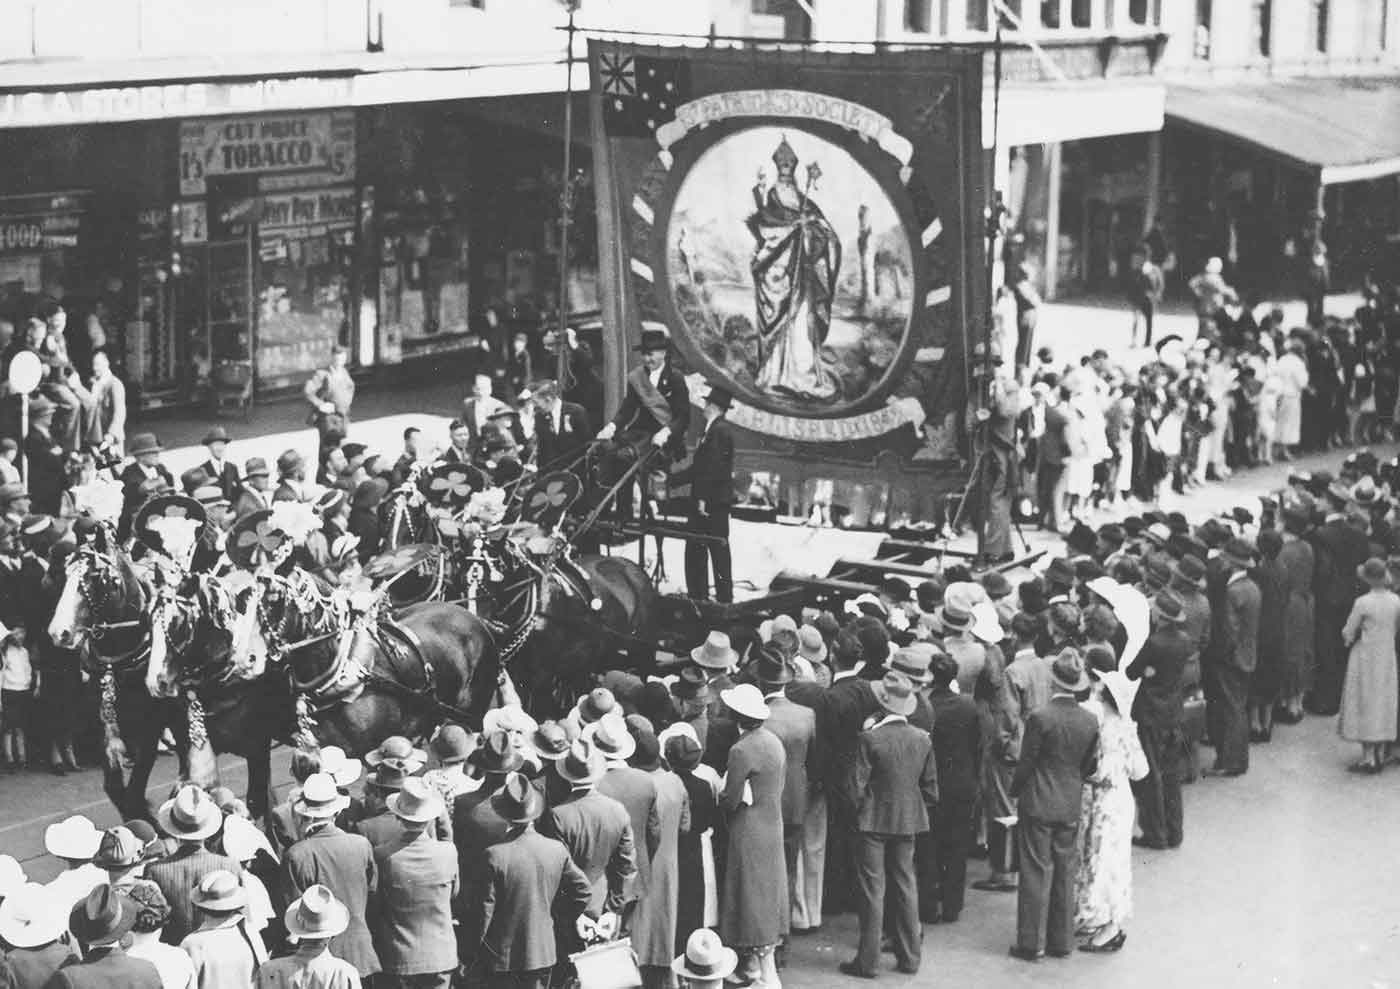 Black and white photo of a procession down a city street featuring a horse drawn float with a large banner, while crowds look on. - click to view larger image